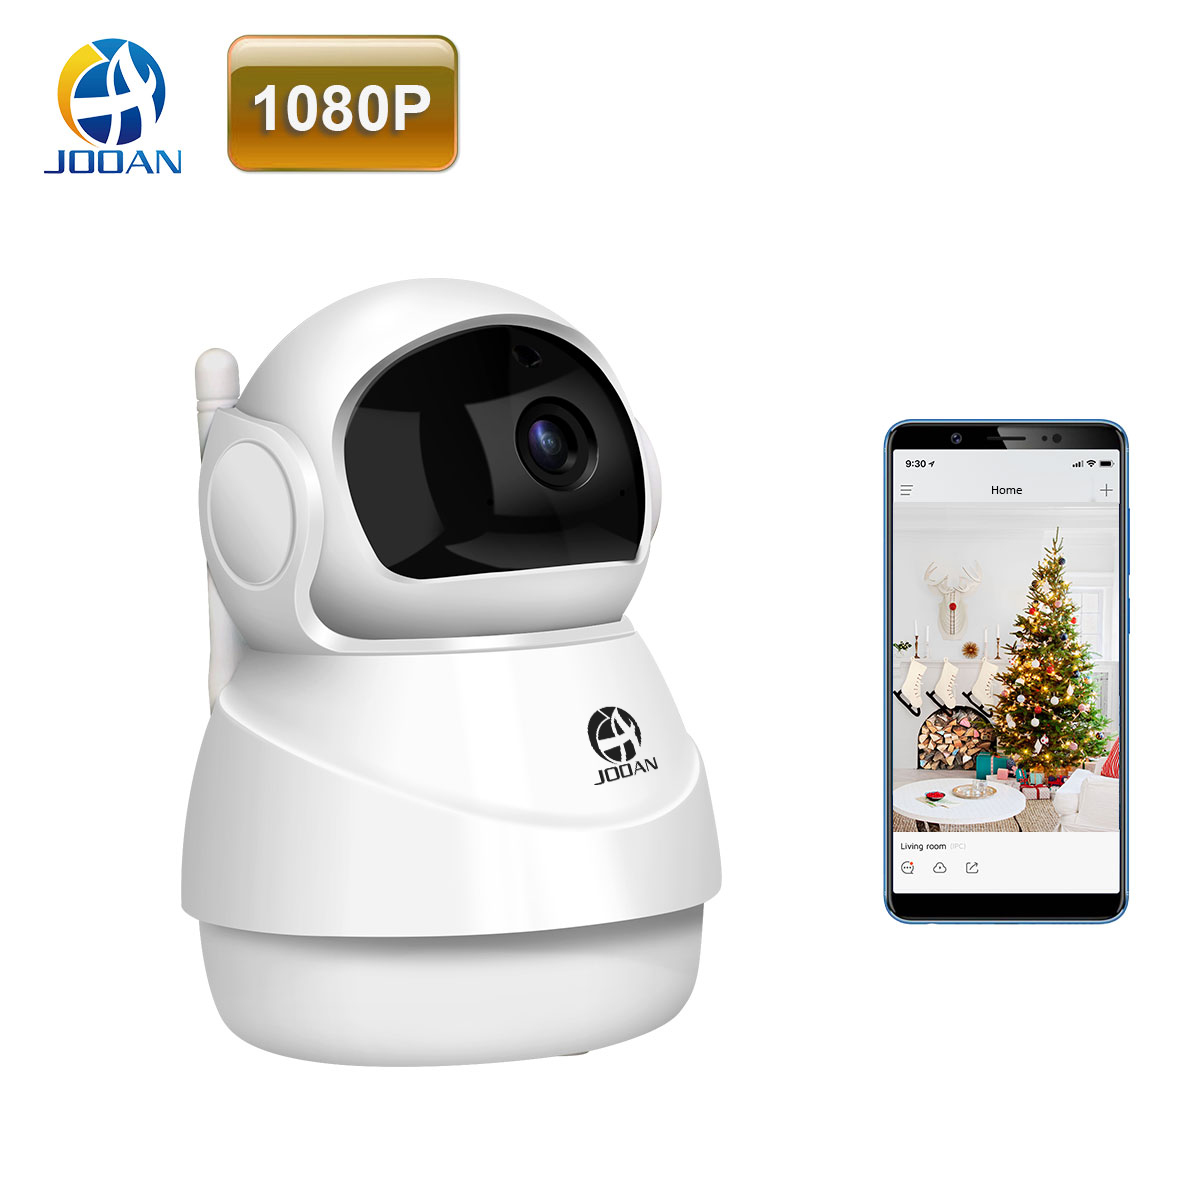 Details about HD 1080P Wireless Baby Monitor IP Camera Home Security Camera  System WiFi 2 Way